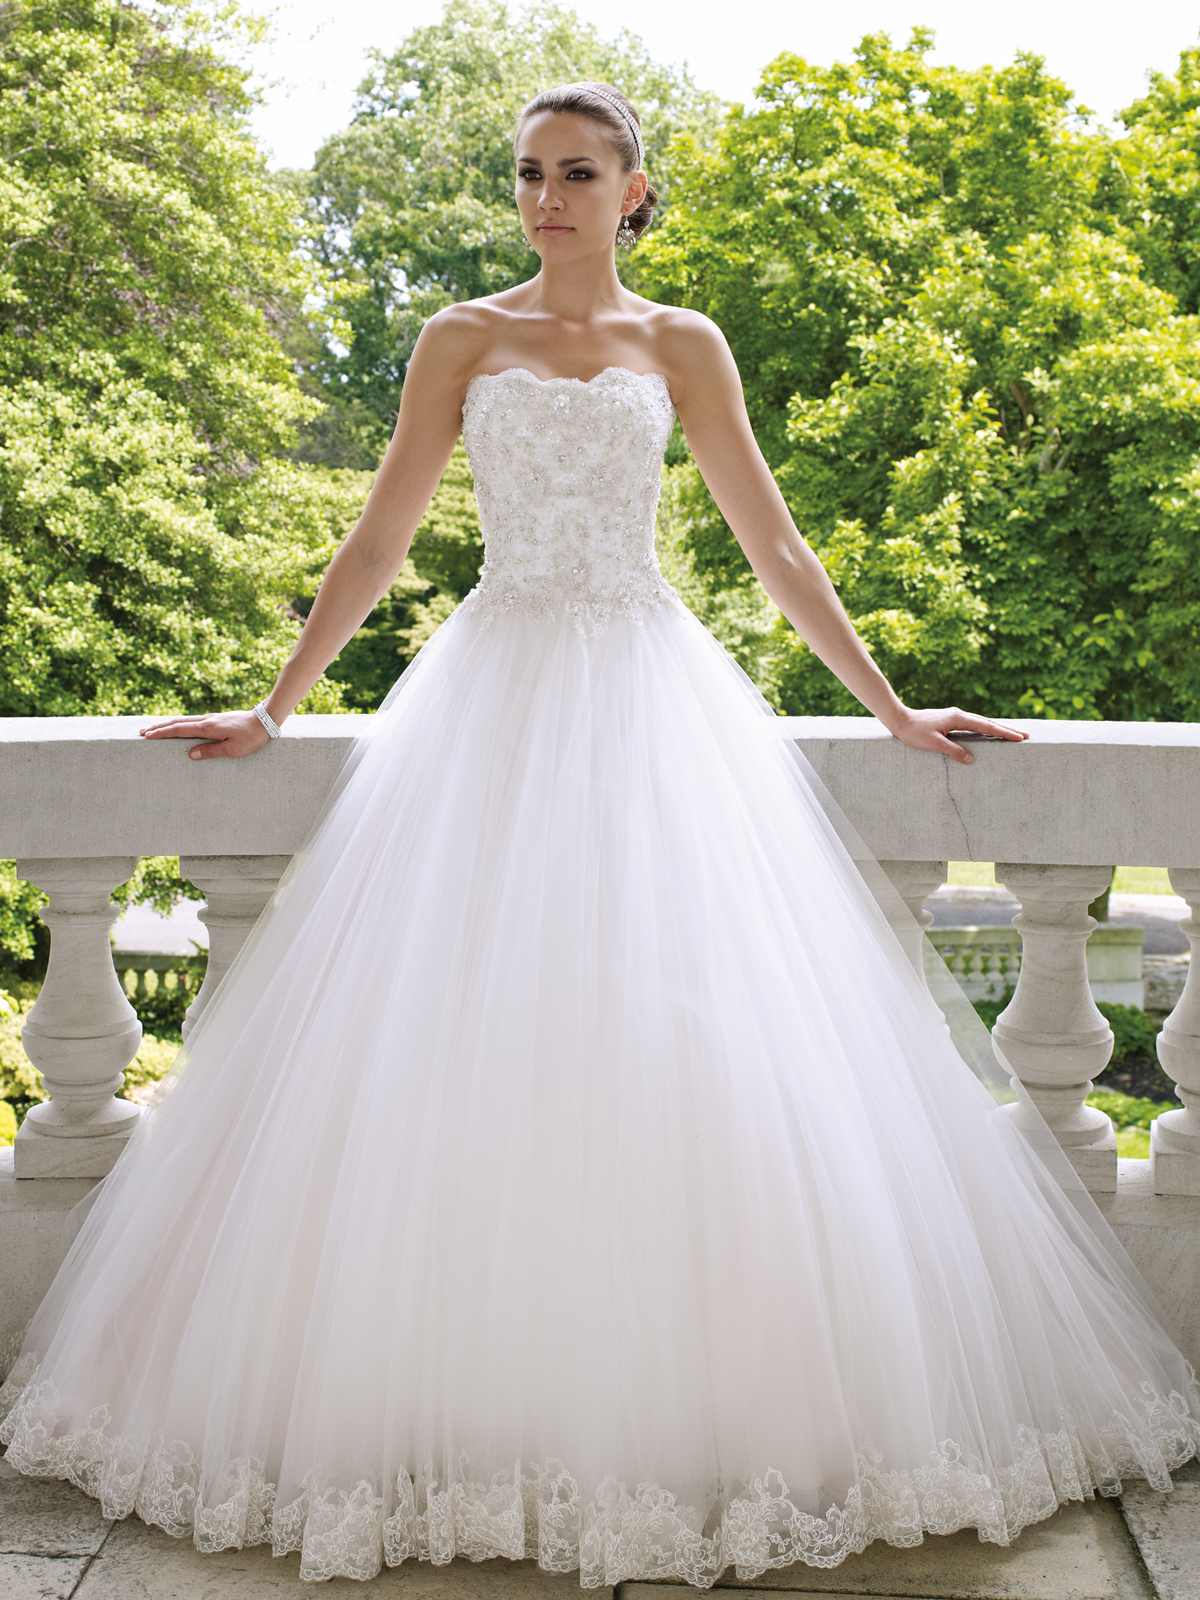 2012-wedding-dress-david-tutera-for-mon-cheri-bridal-gowns-112215.original